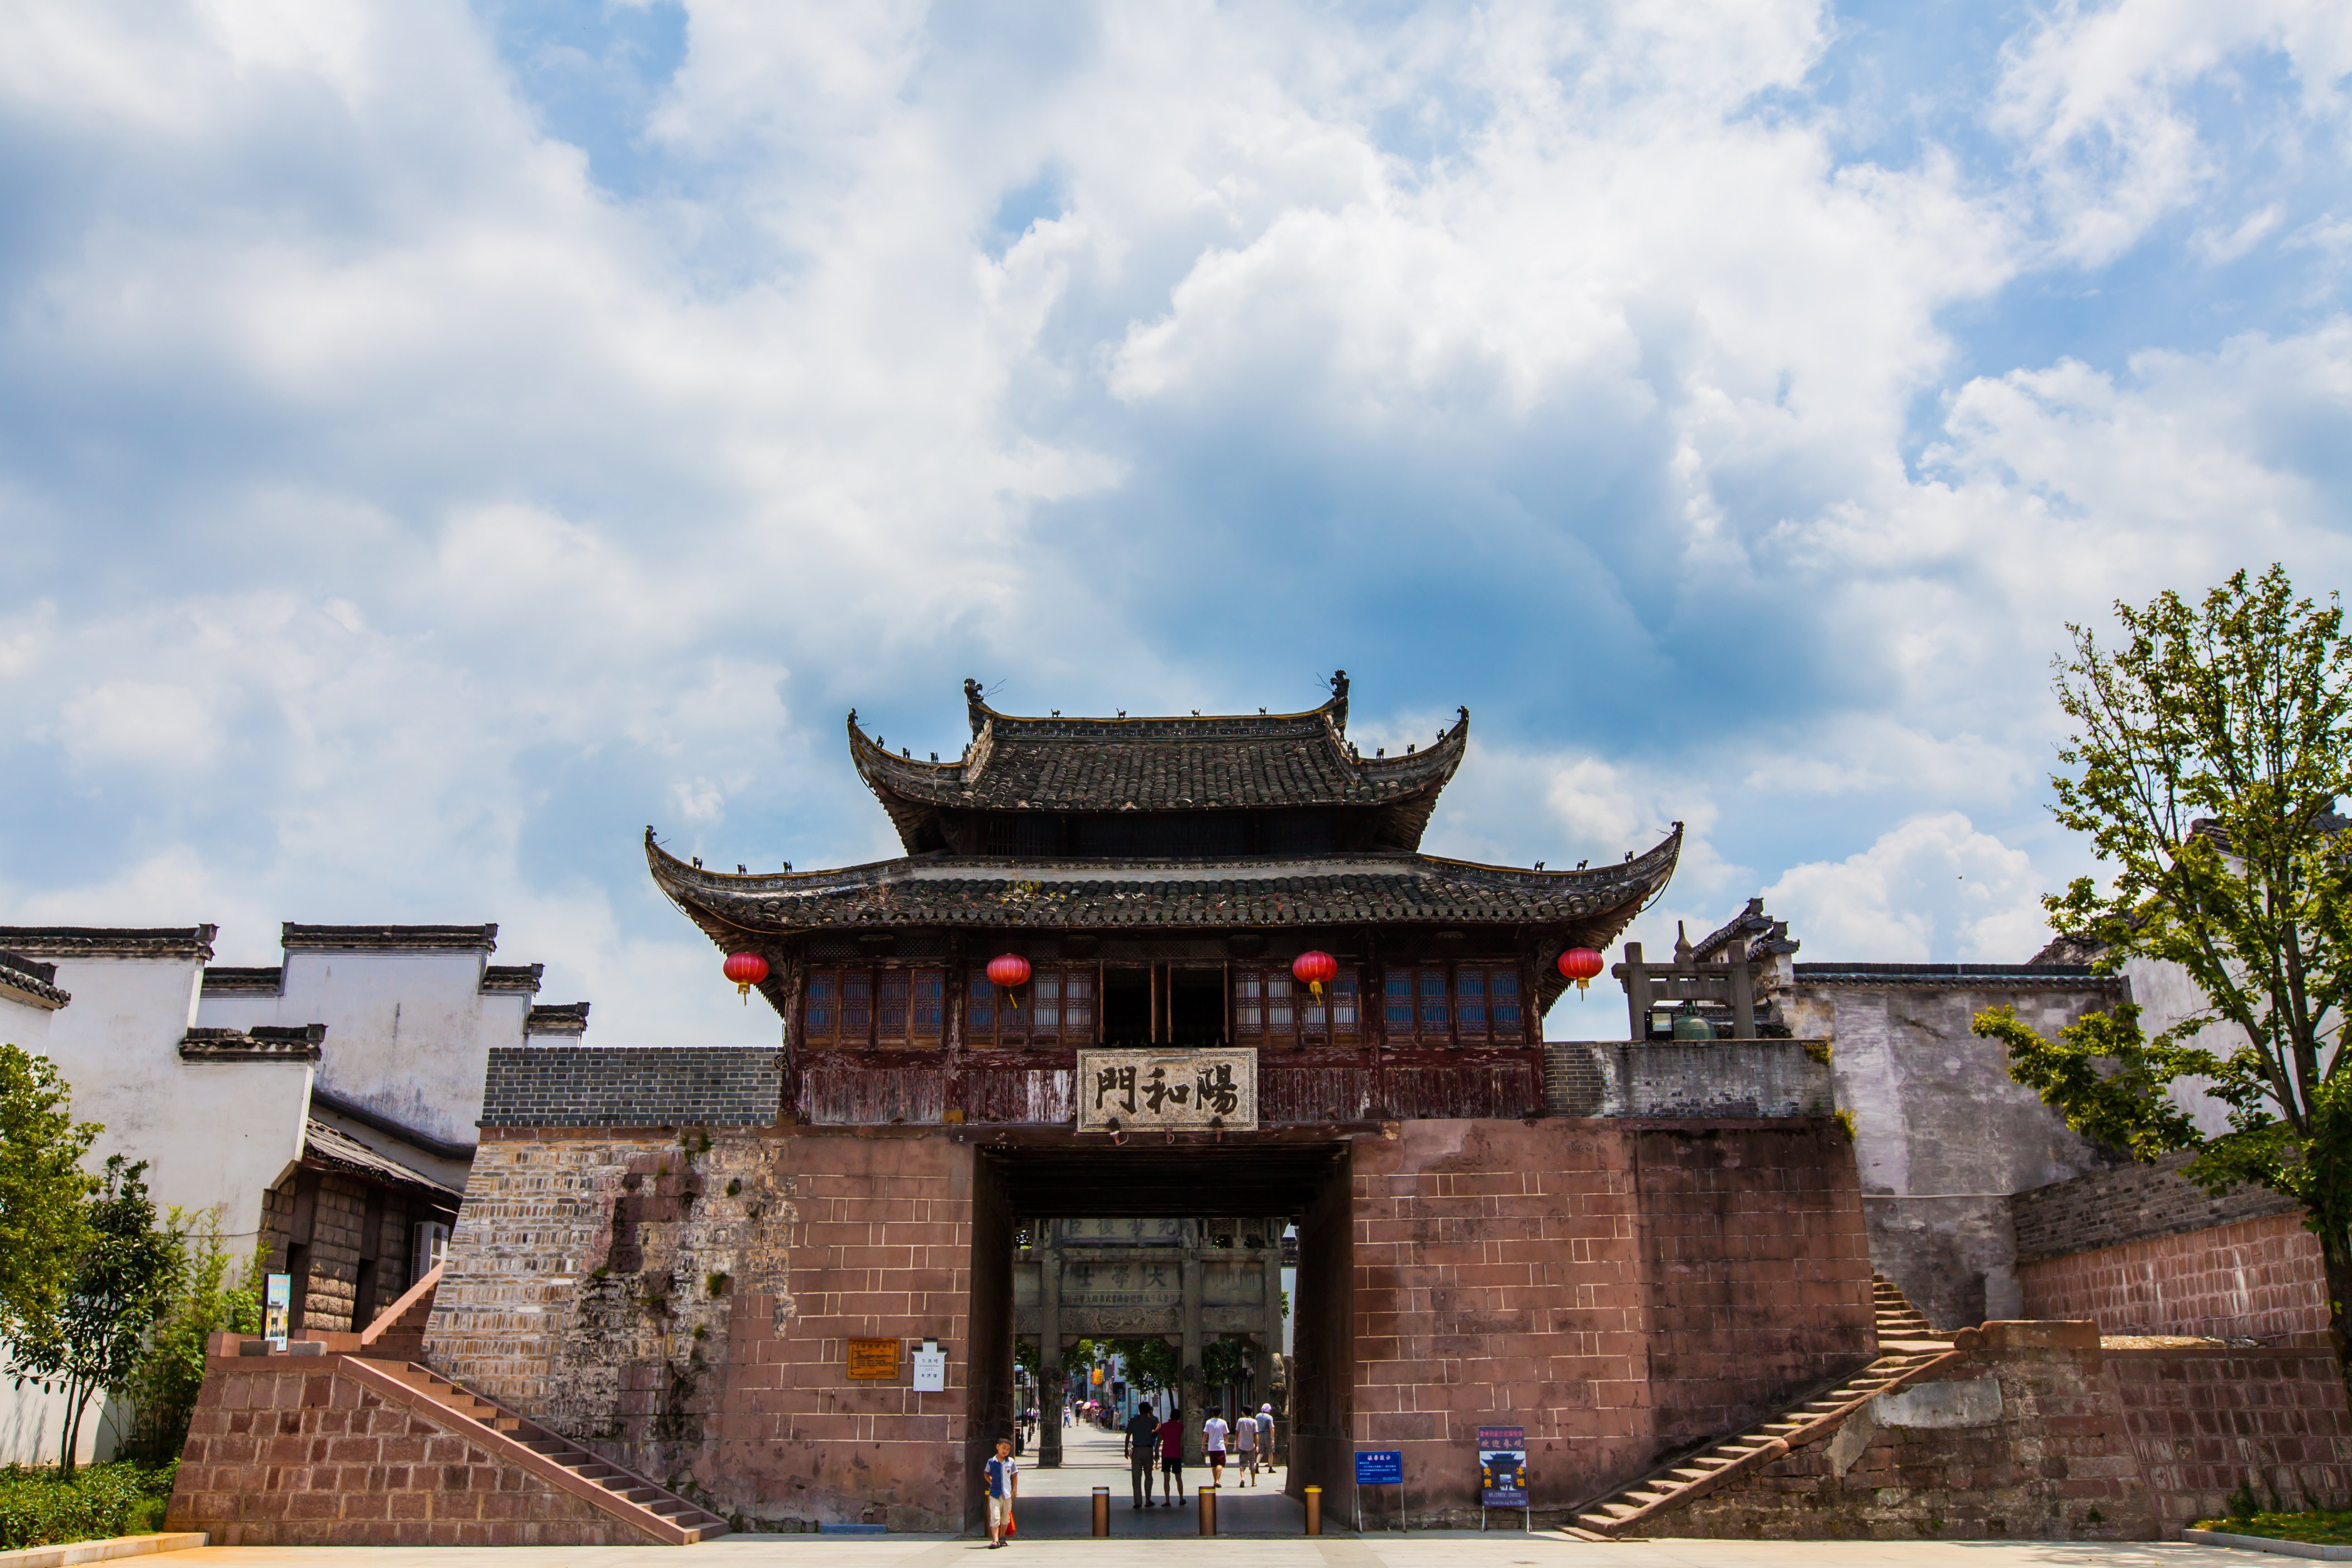 Half Day Tour of Ancient Huizhou Cultural Tourism Zone-be world-famous and No shopping